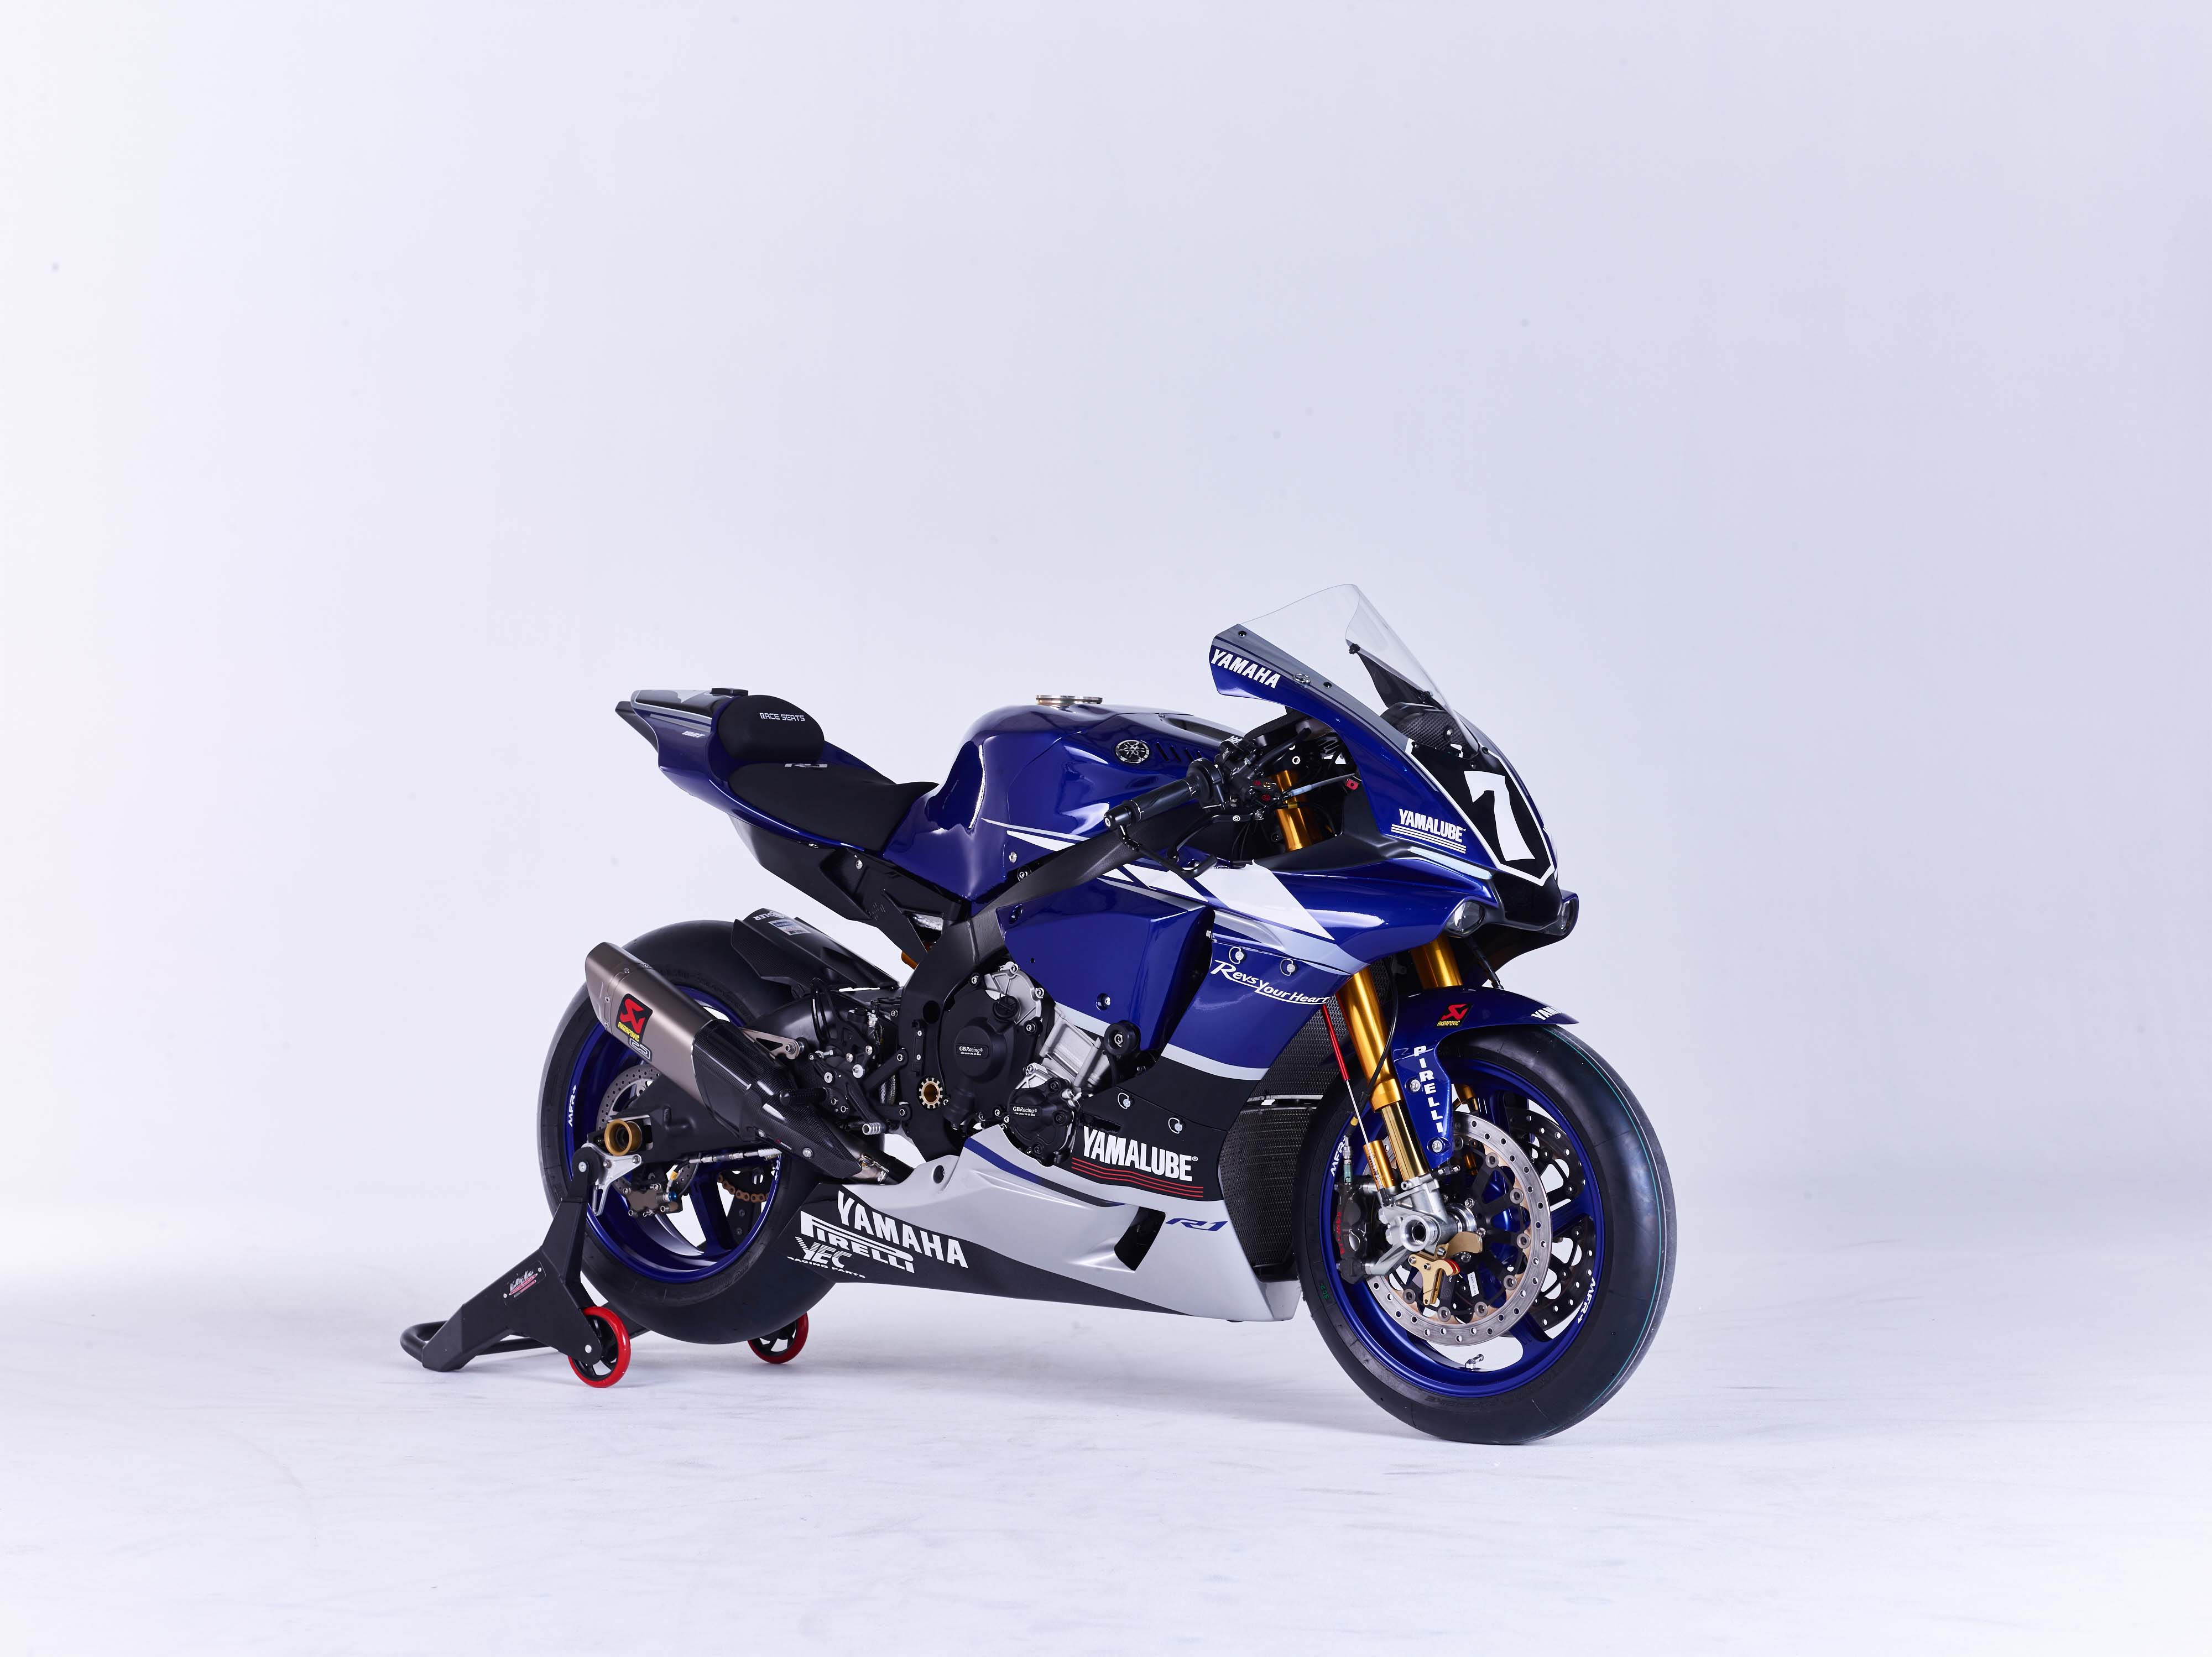 The Differences Between Two Endurance Racing Yamahas